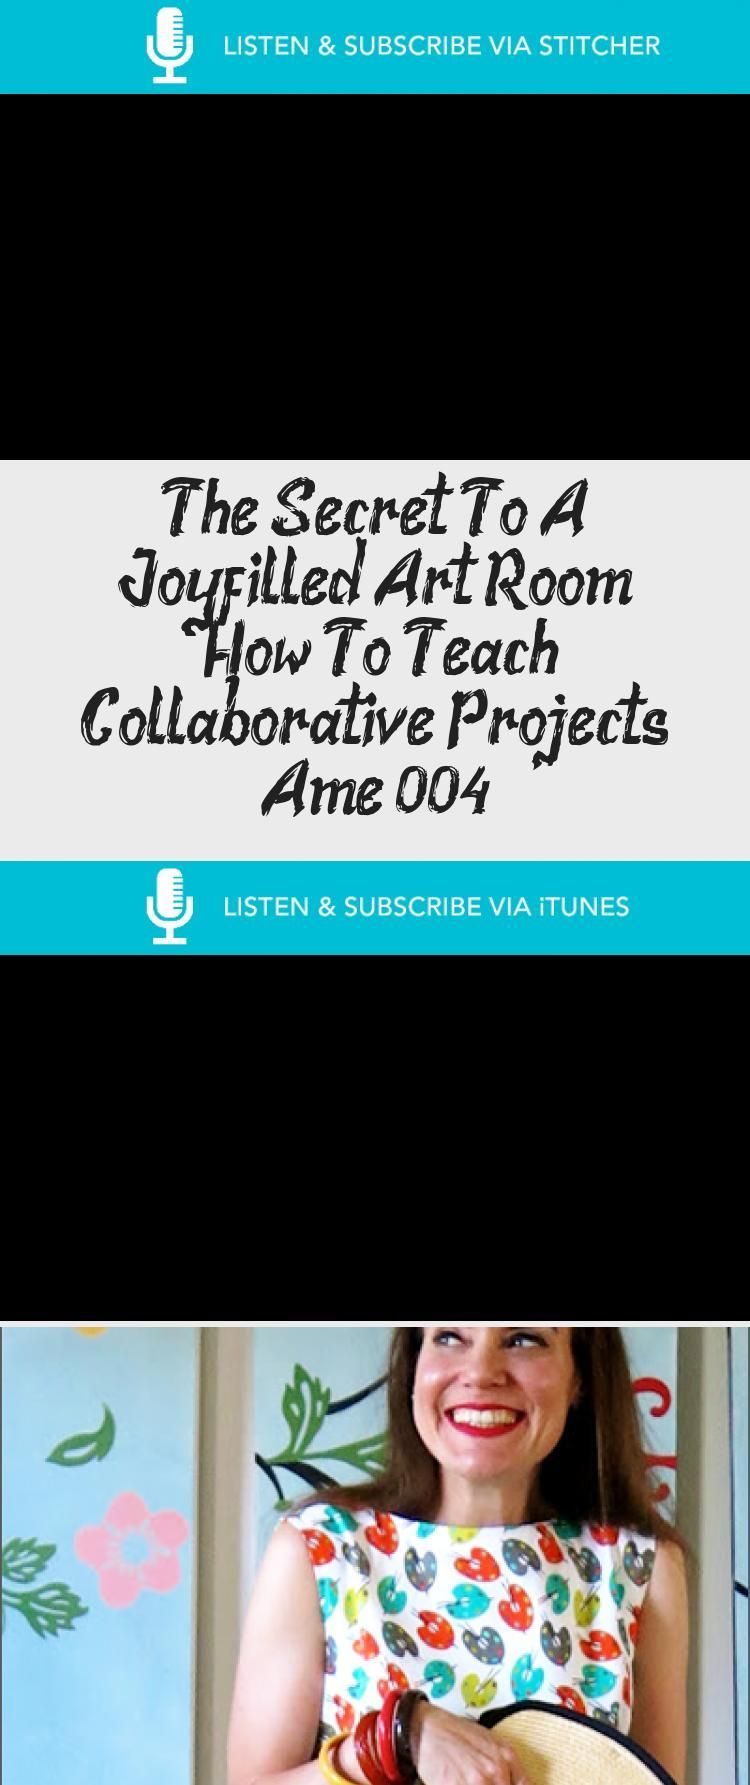 The Secret To A Joy-filled Art Room & How To Teach Collaborative Projects: Ame 004 - ART -  - #Ame #Art #collaborative #Joyfilled #Projects #room #secret #teach